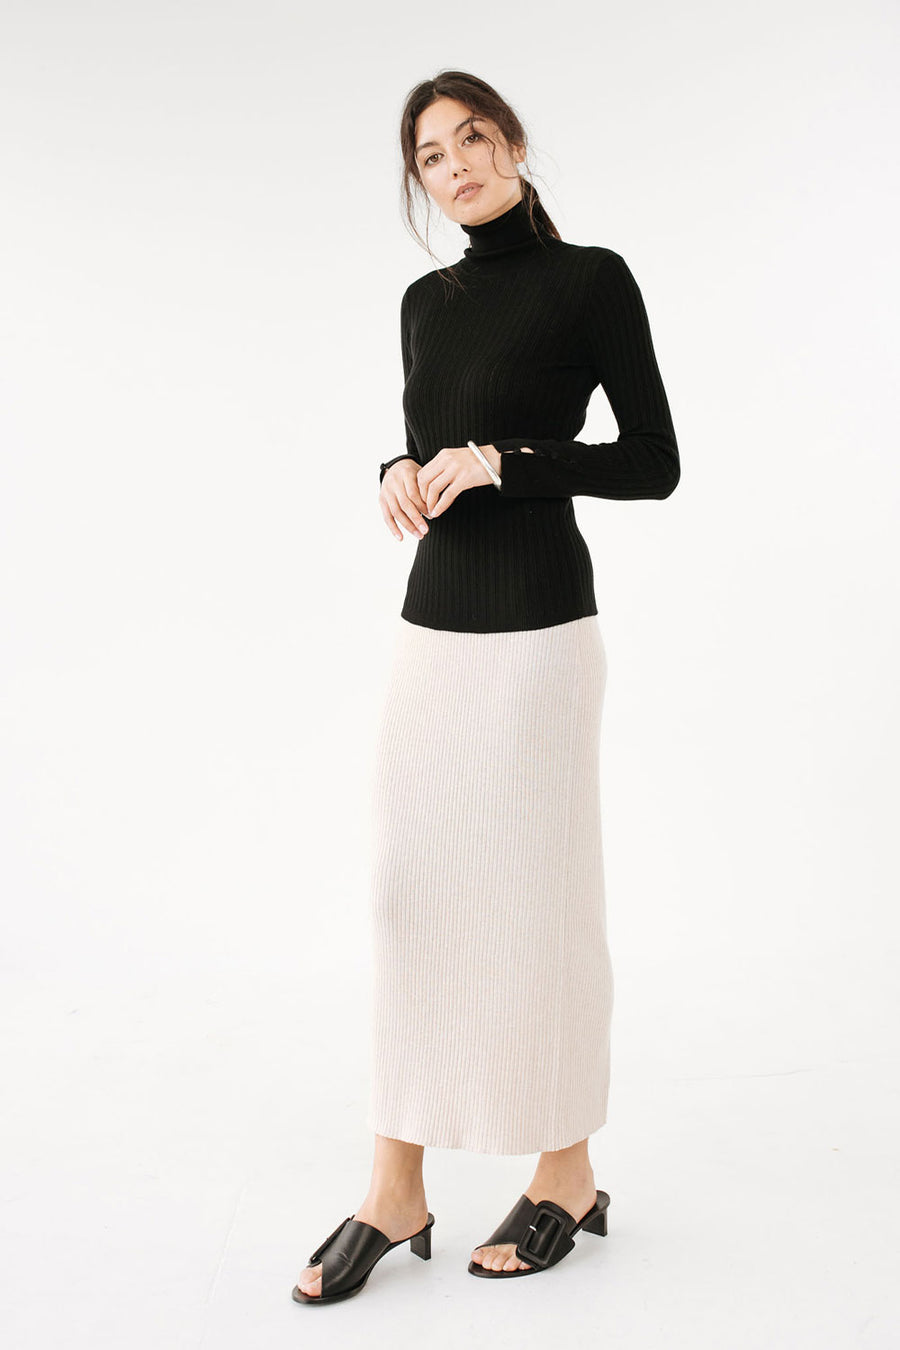 Remi Turtle Neck | Black | Tops NZ | MARLE NZ | Black Box Boutique Auckland | Womens Fashion NZ